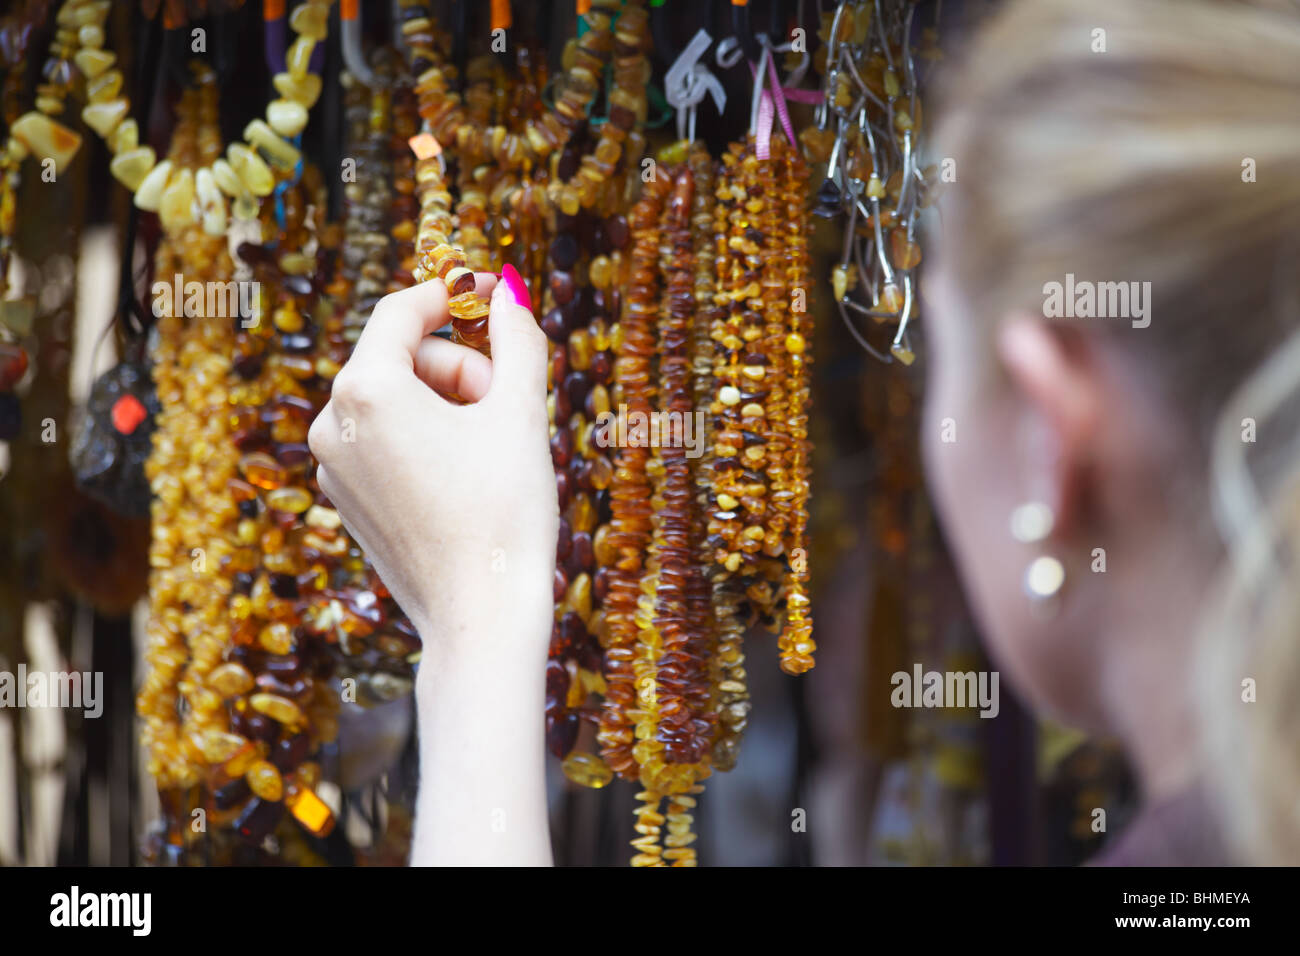 Woman Holding bijoux d'Ambre, Vilnius, Lituanie, Pays Baltes, Europe de l'Est Photo Stock